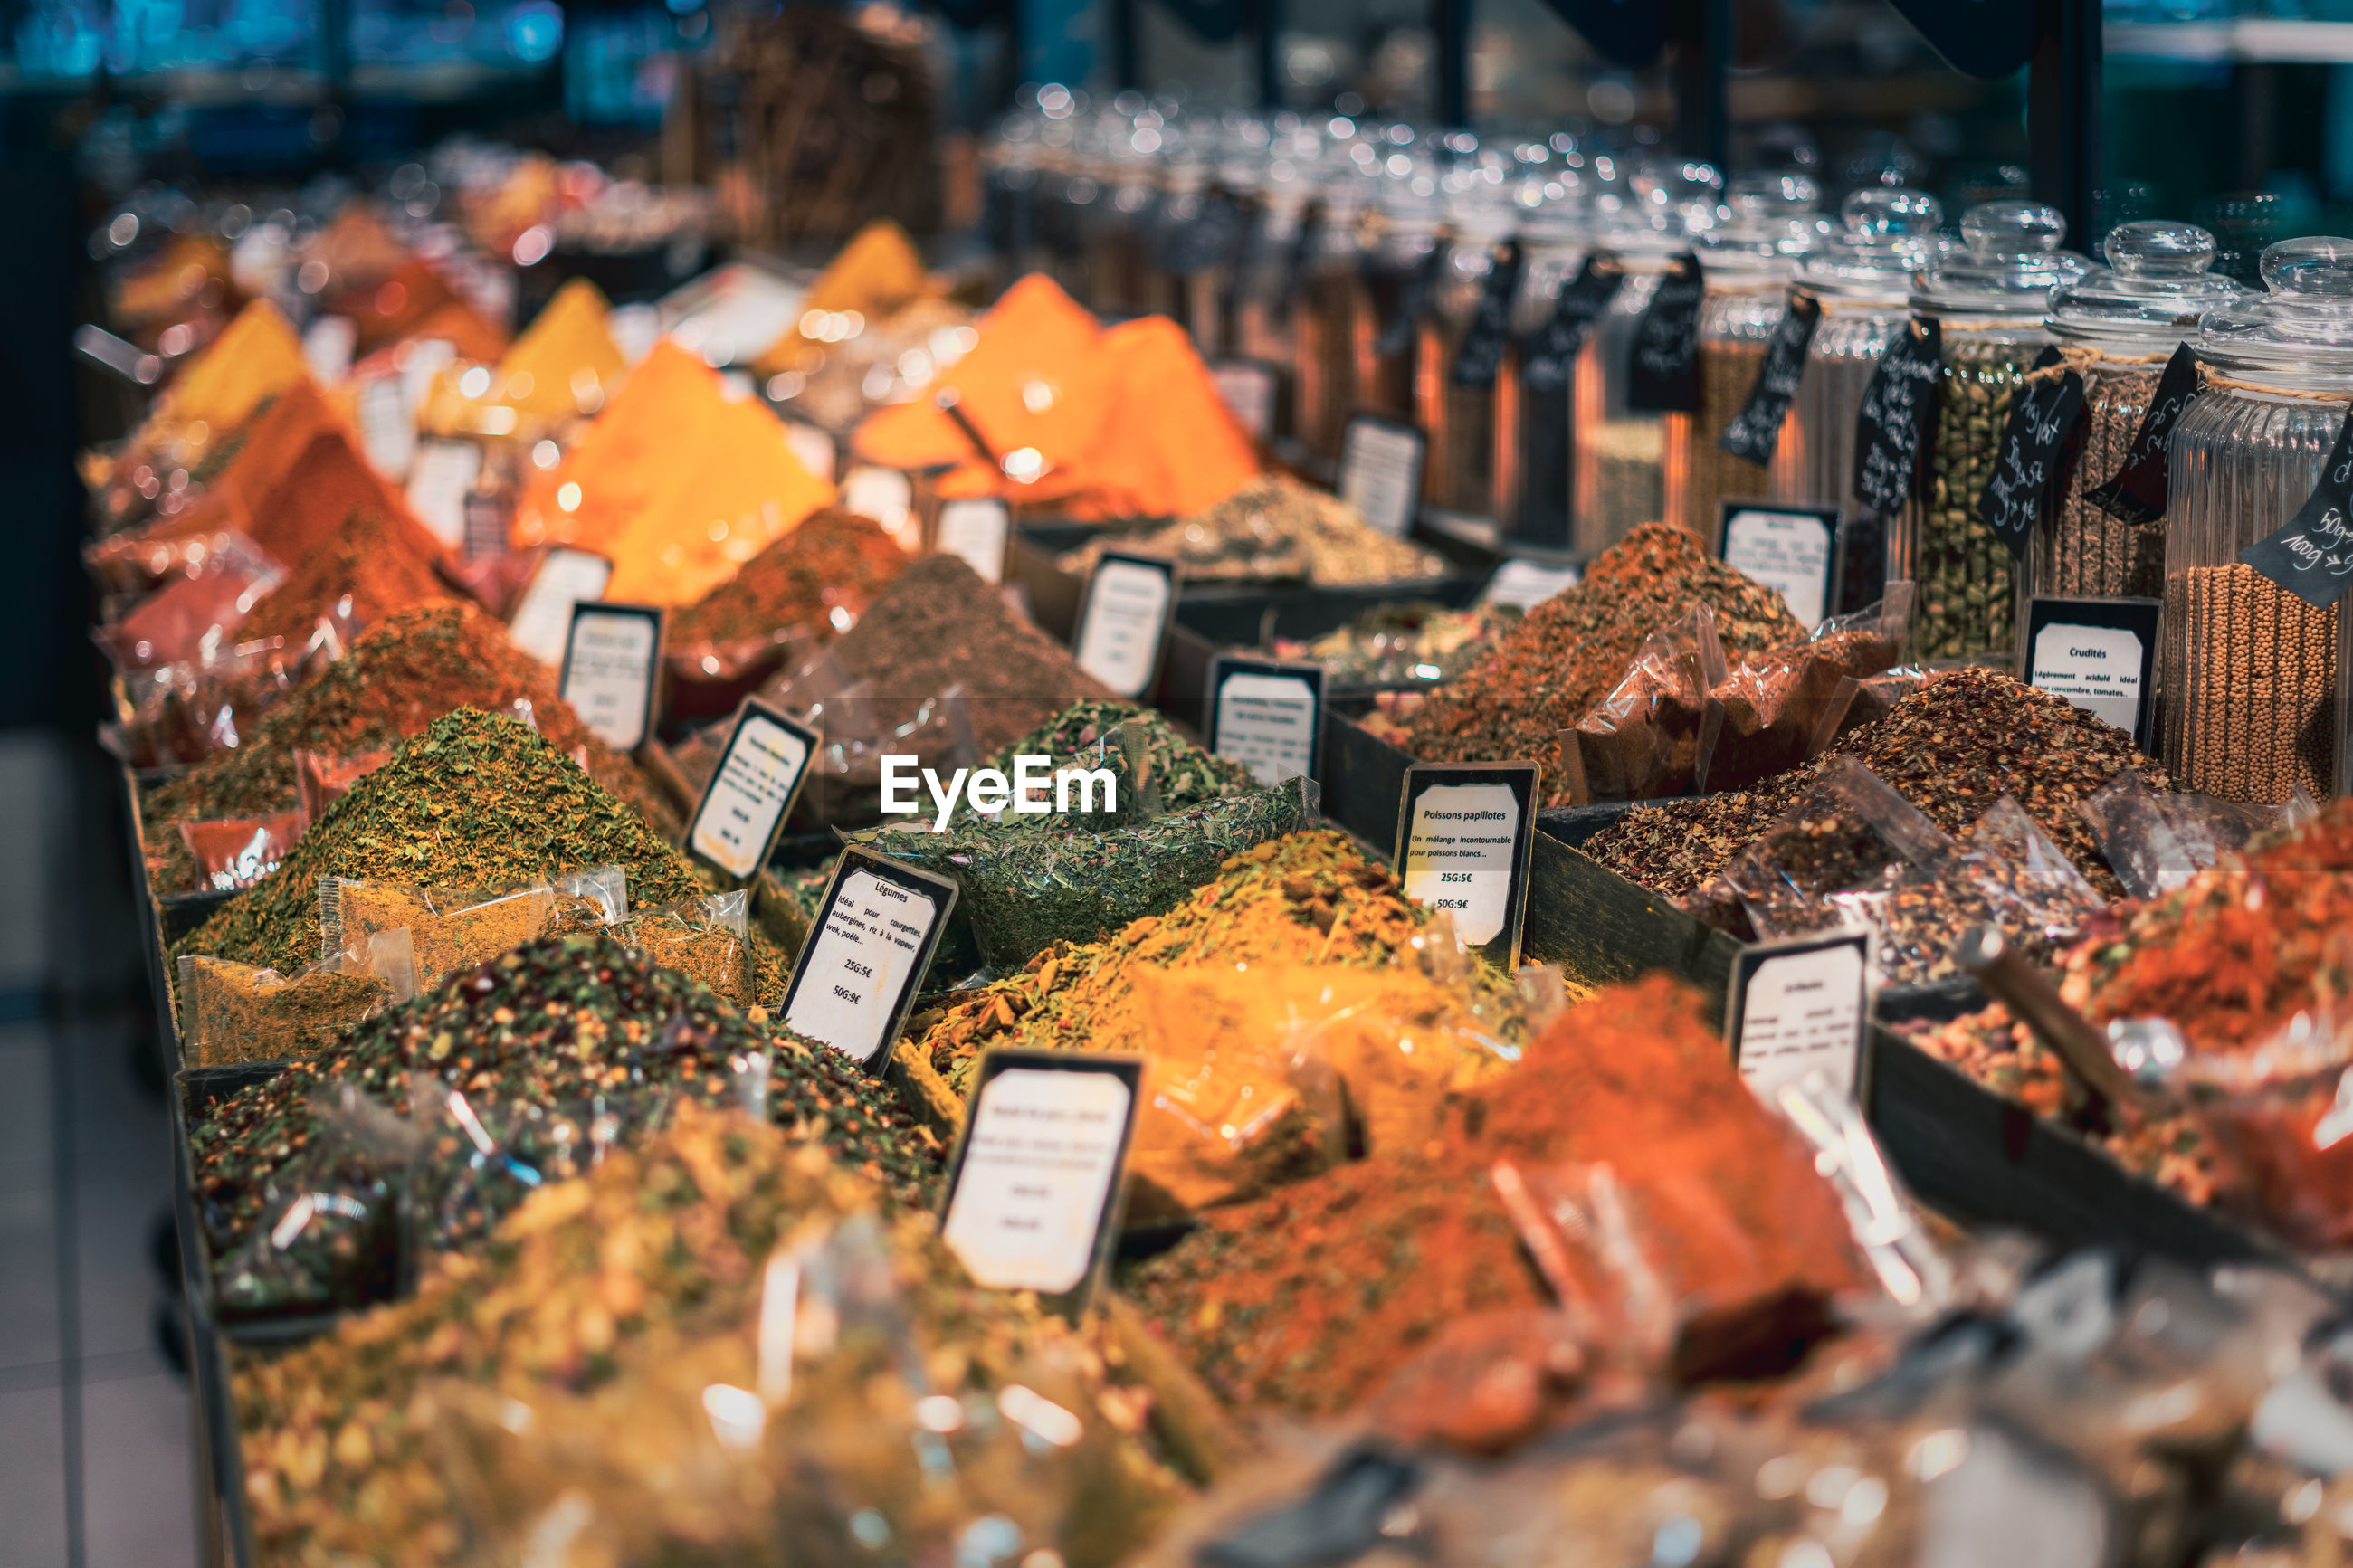 View of spices for sale in store